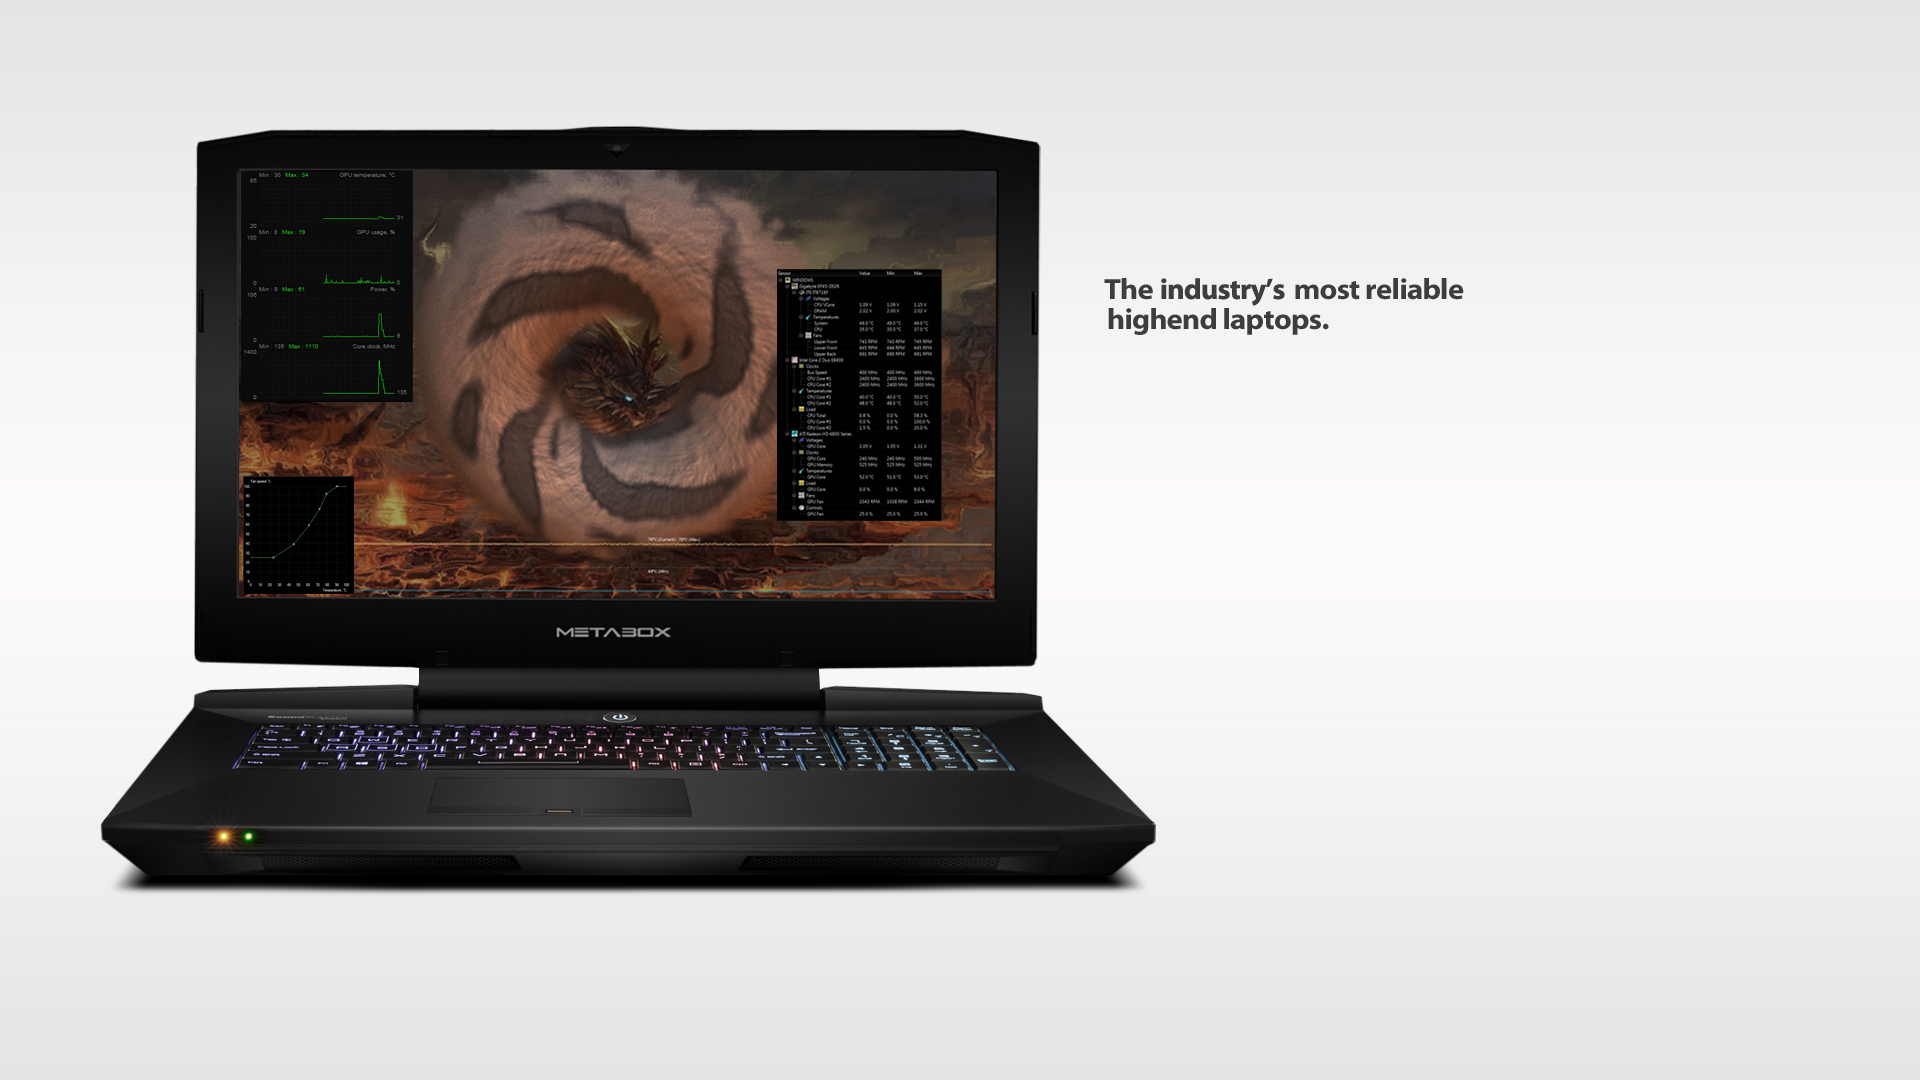 onkyo laptop. the screen is gateway to visualising every task on your laptop, which why we take quality so seriously. laptop that leaves our onkyo